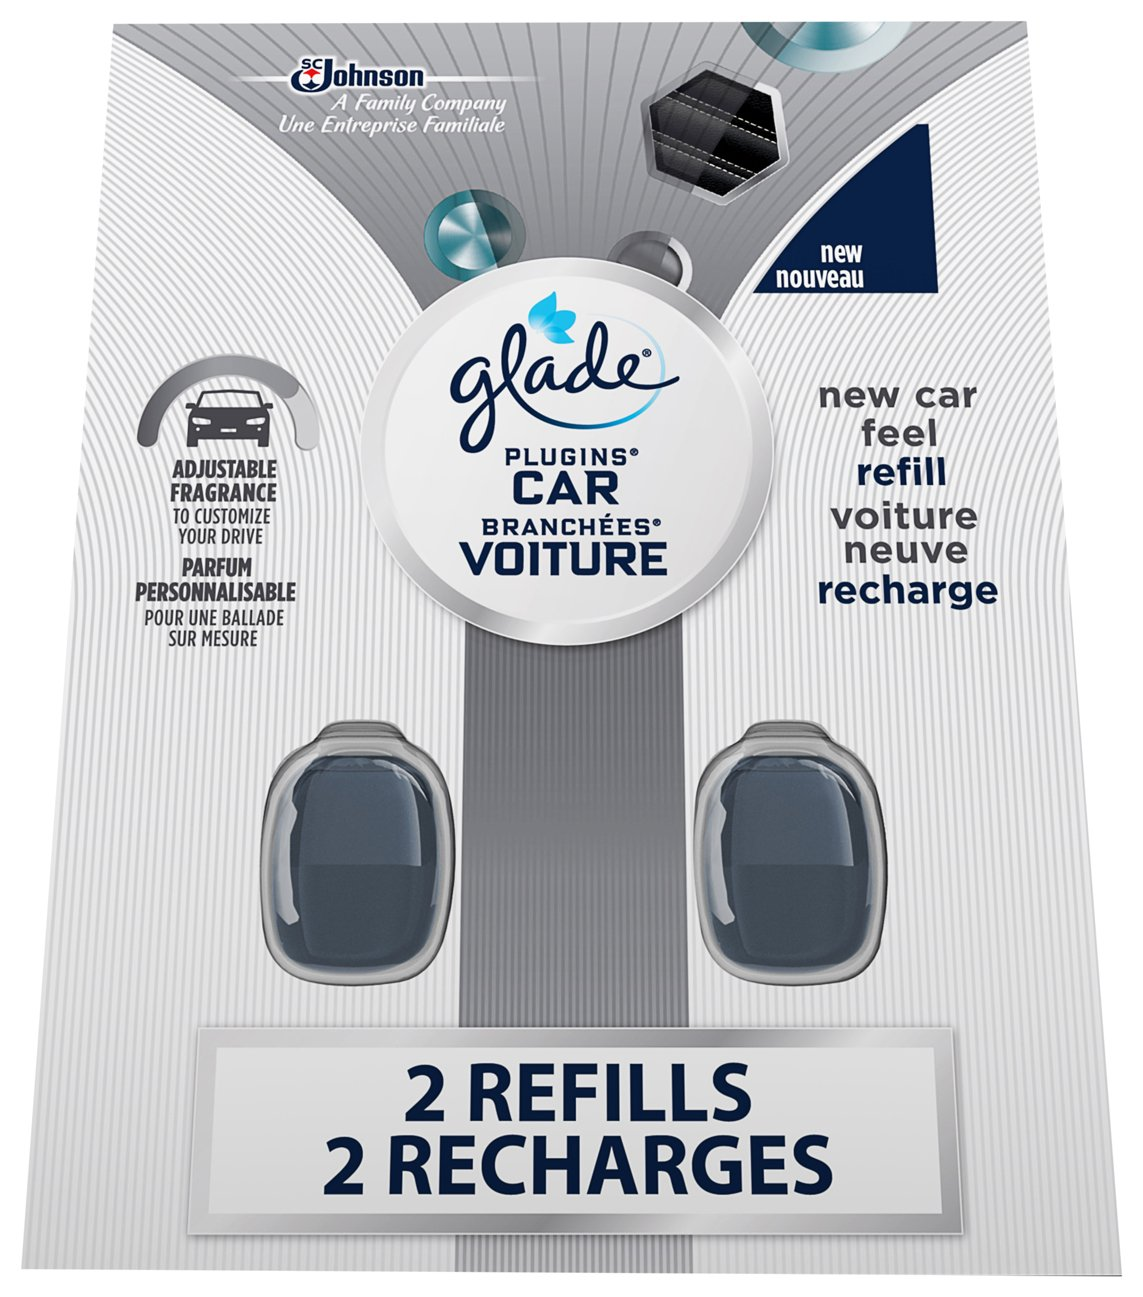 Glade PlugIns Scented Car Refill, New Car Scent - 2 Count SC Johnson 302108